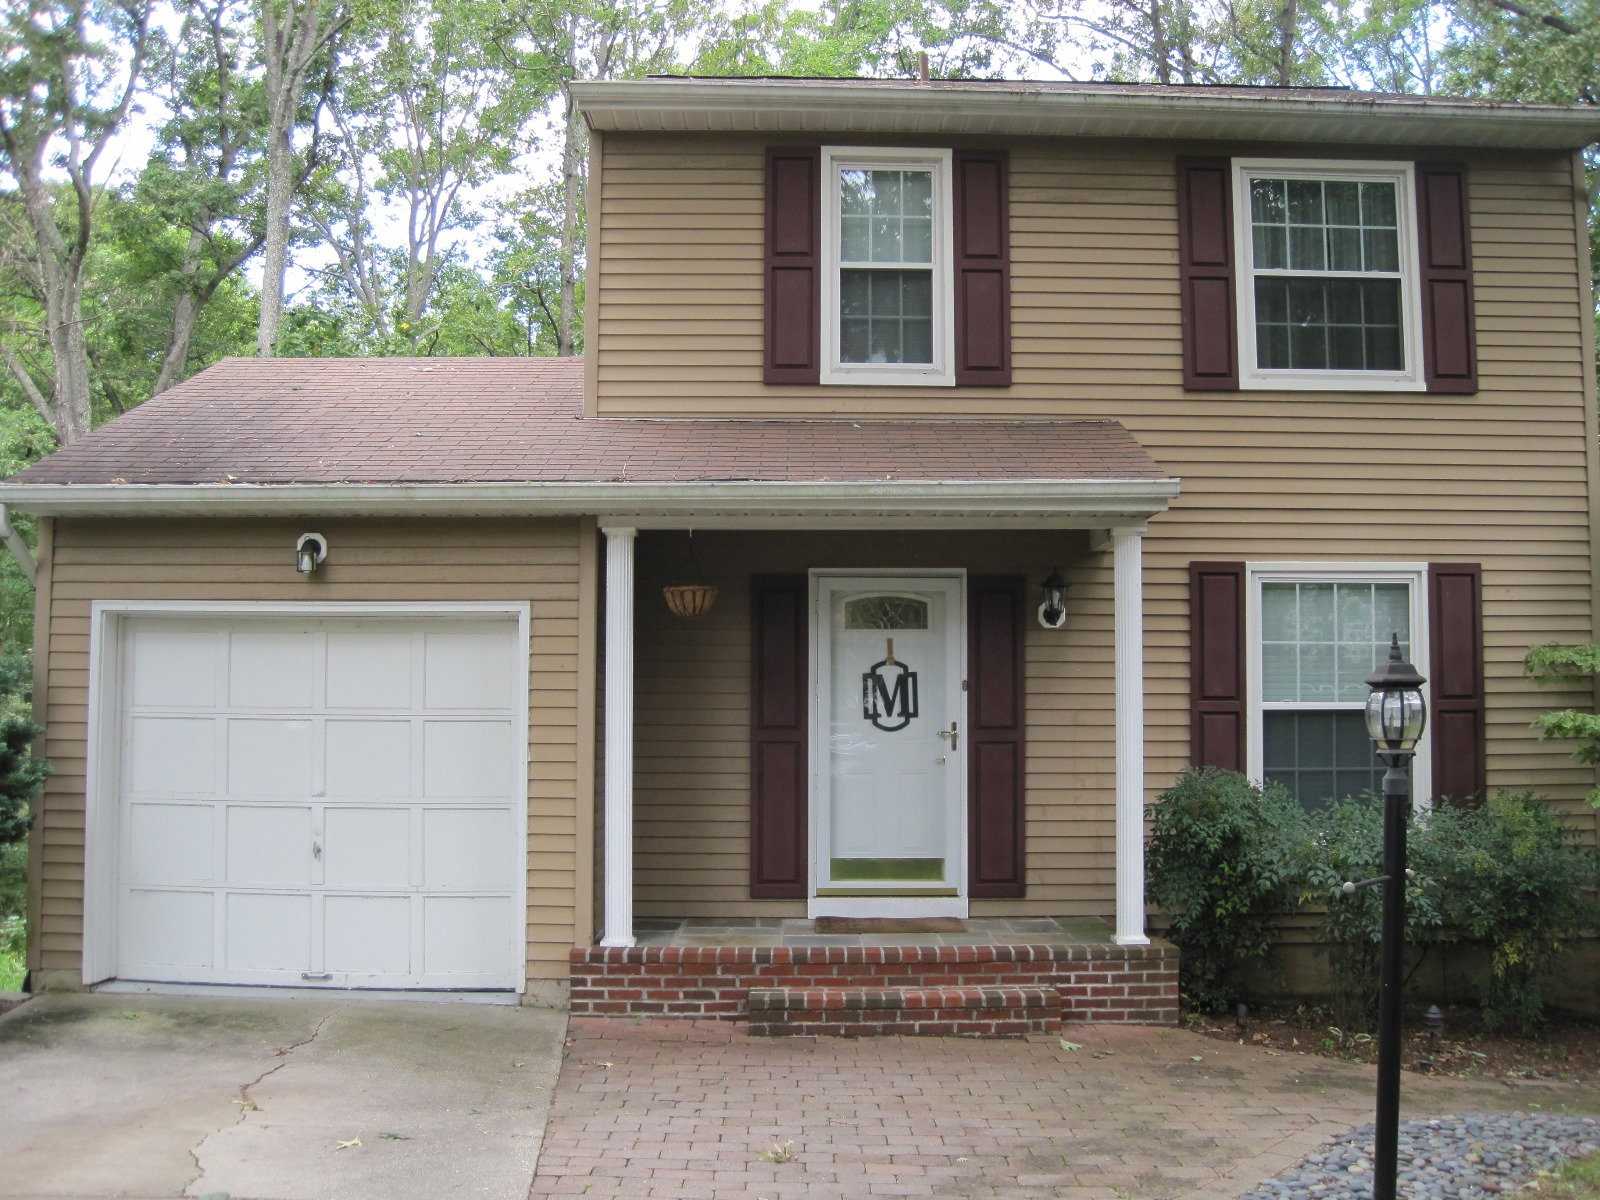 Additional photo for property listing at 946 Blue Fox Way, Arnold  Arnold, Maryland 21012 Verenigde Staten